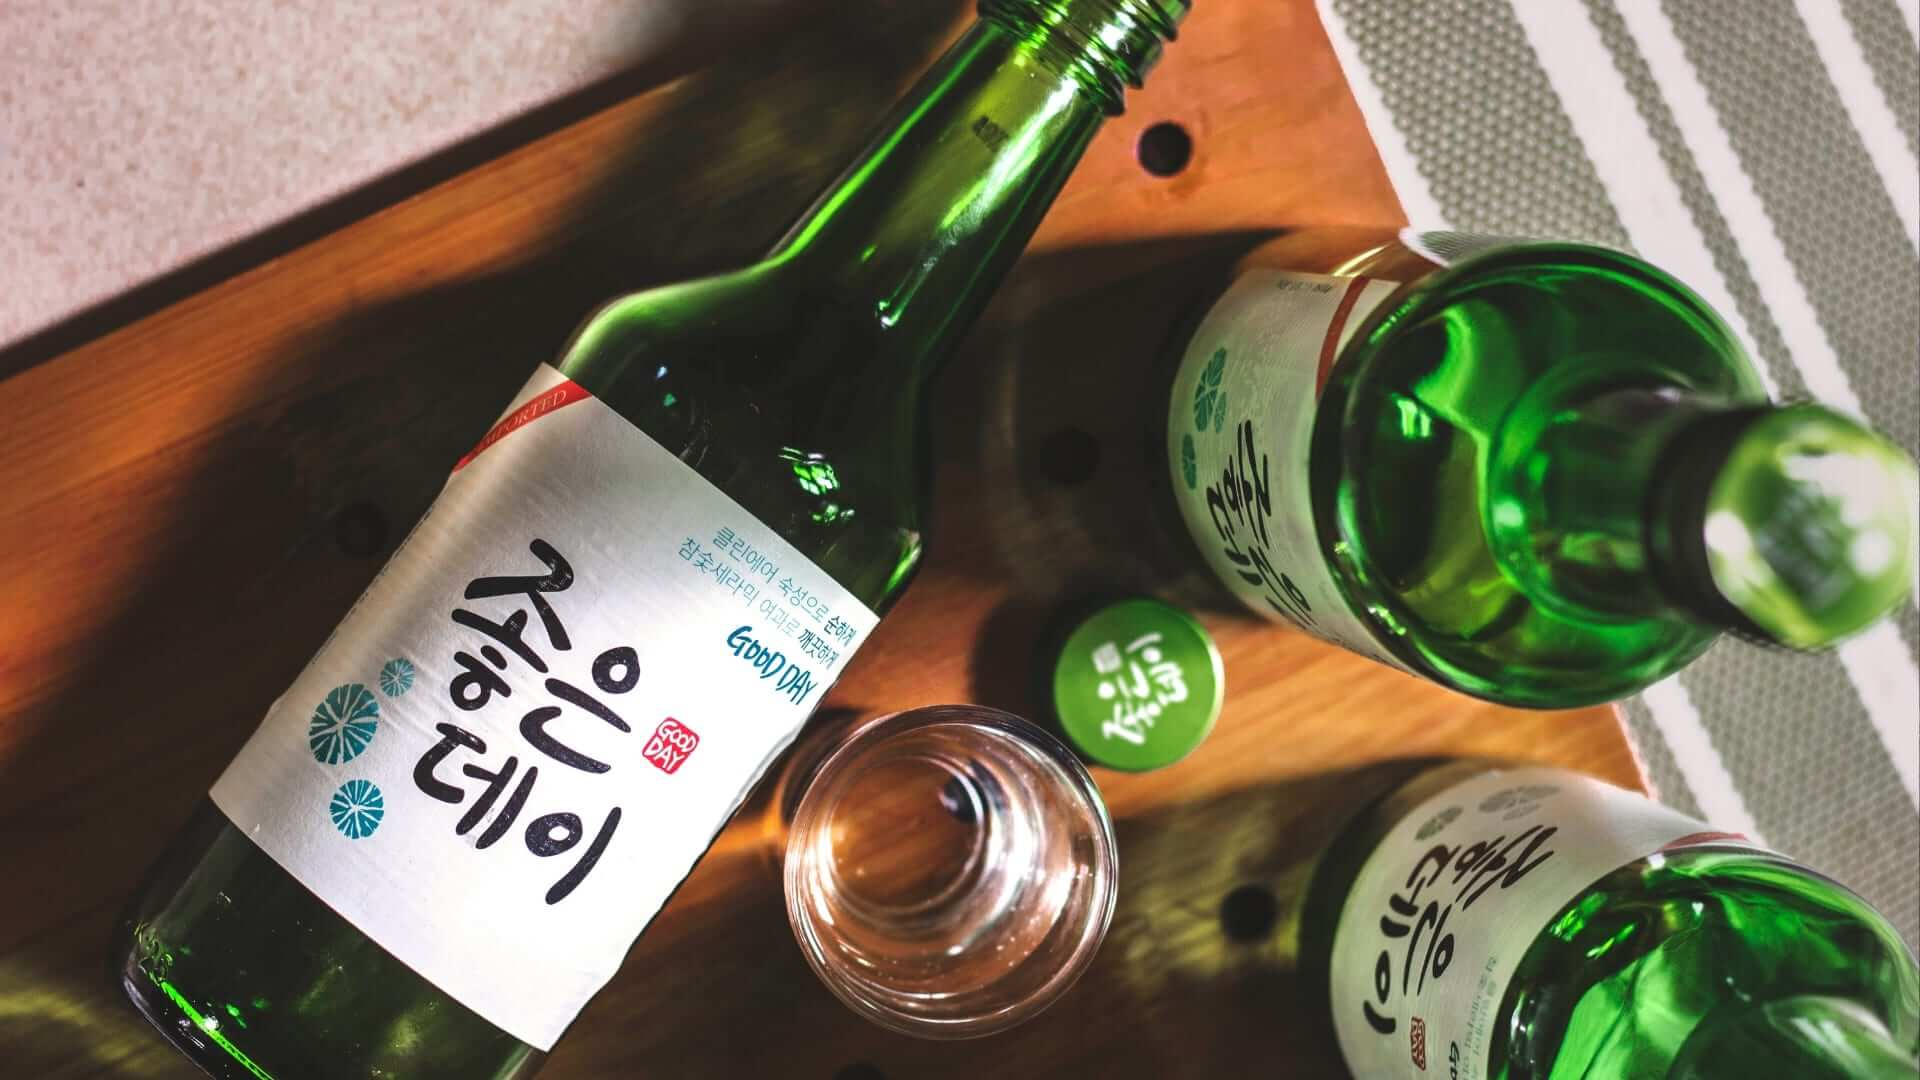 A shot glass is standing in the middle of three green bottles with Korean text on it in Seoul.